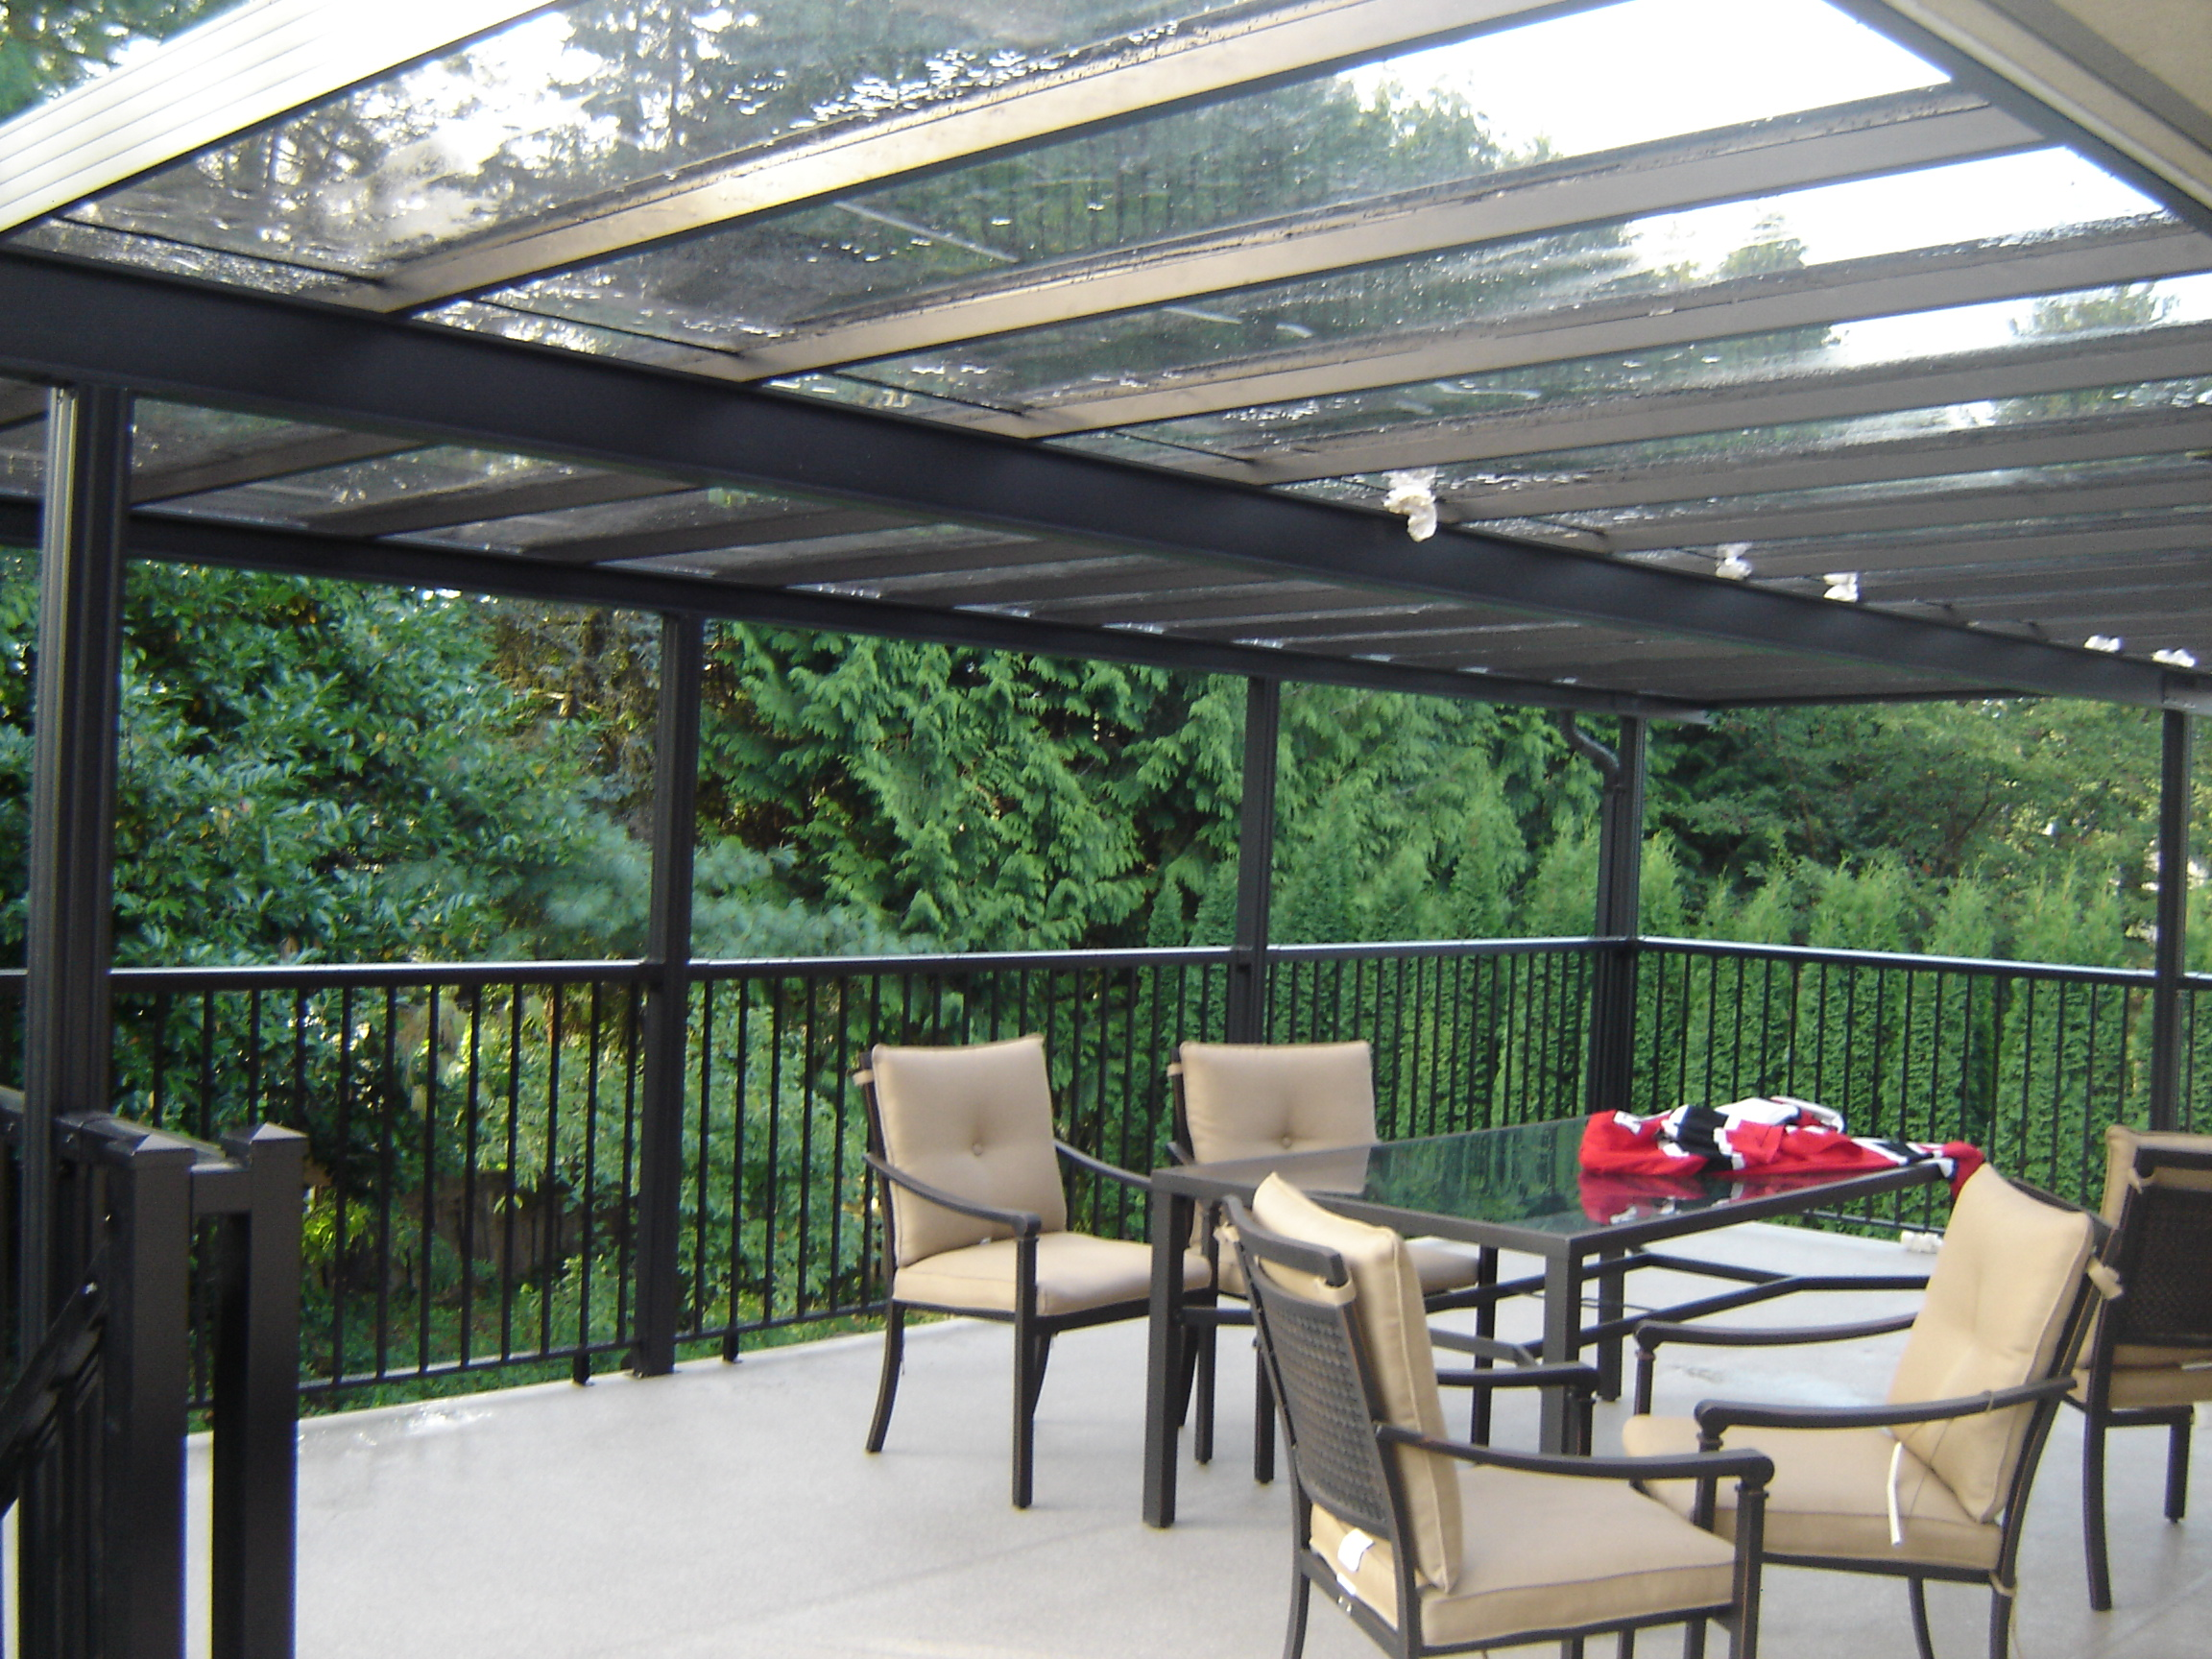 Backyard Patio Covers: From Usefulness To Style - HomesFeed on Backyard Patio Cover  id=15133